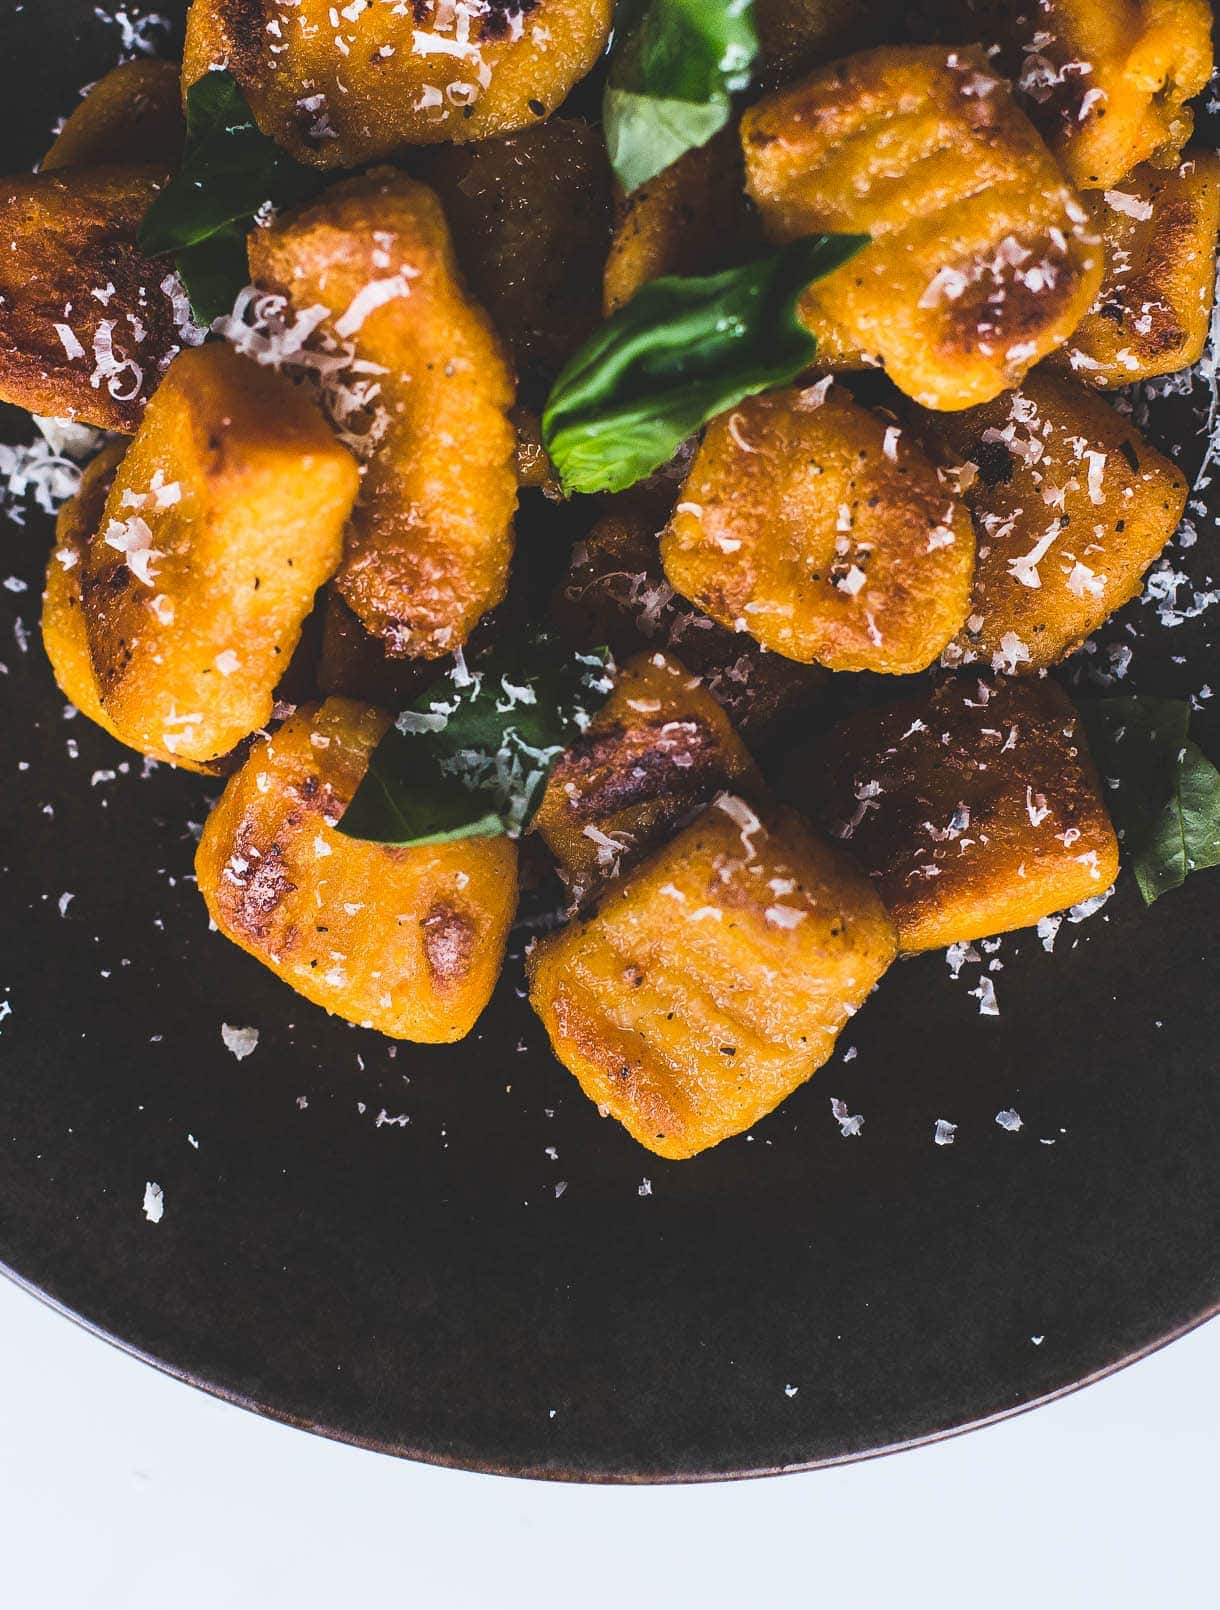 5 Ingredient Gluten-Free & Vegan Sweet Potato Gnocchi